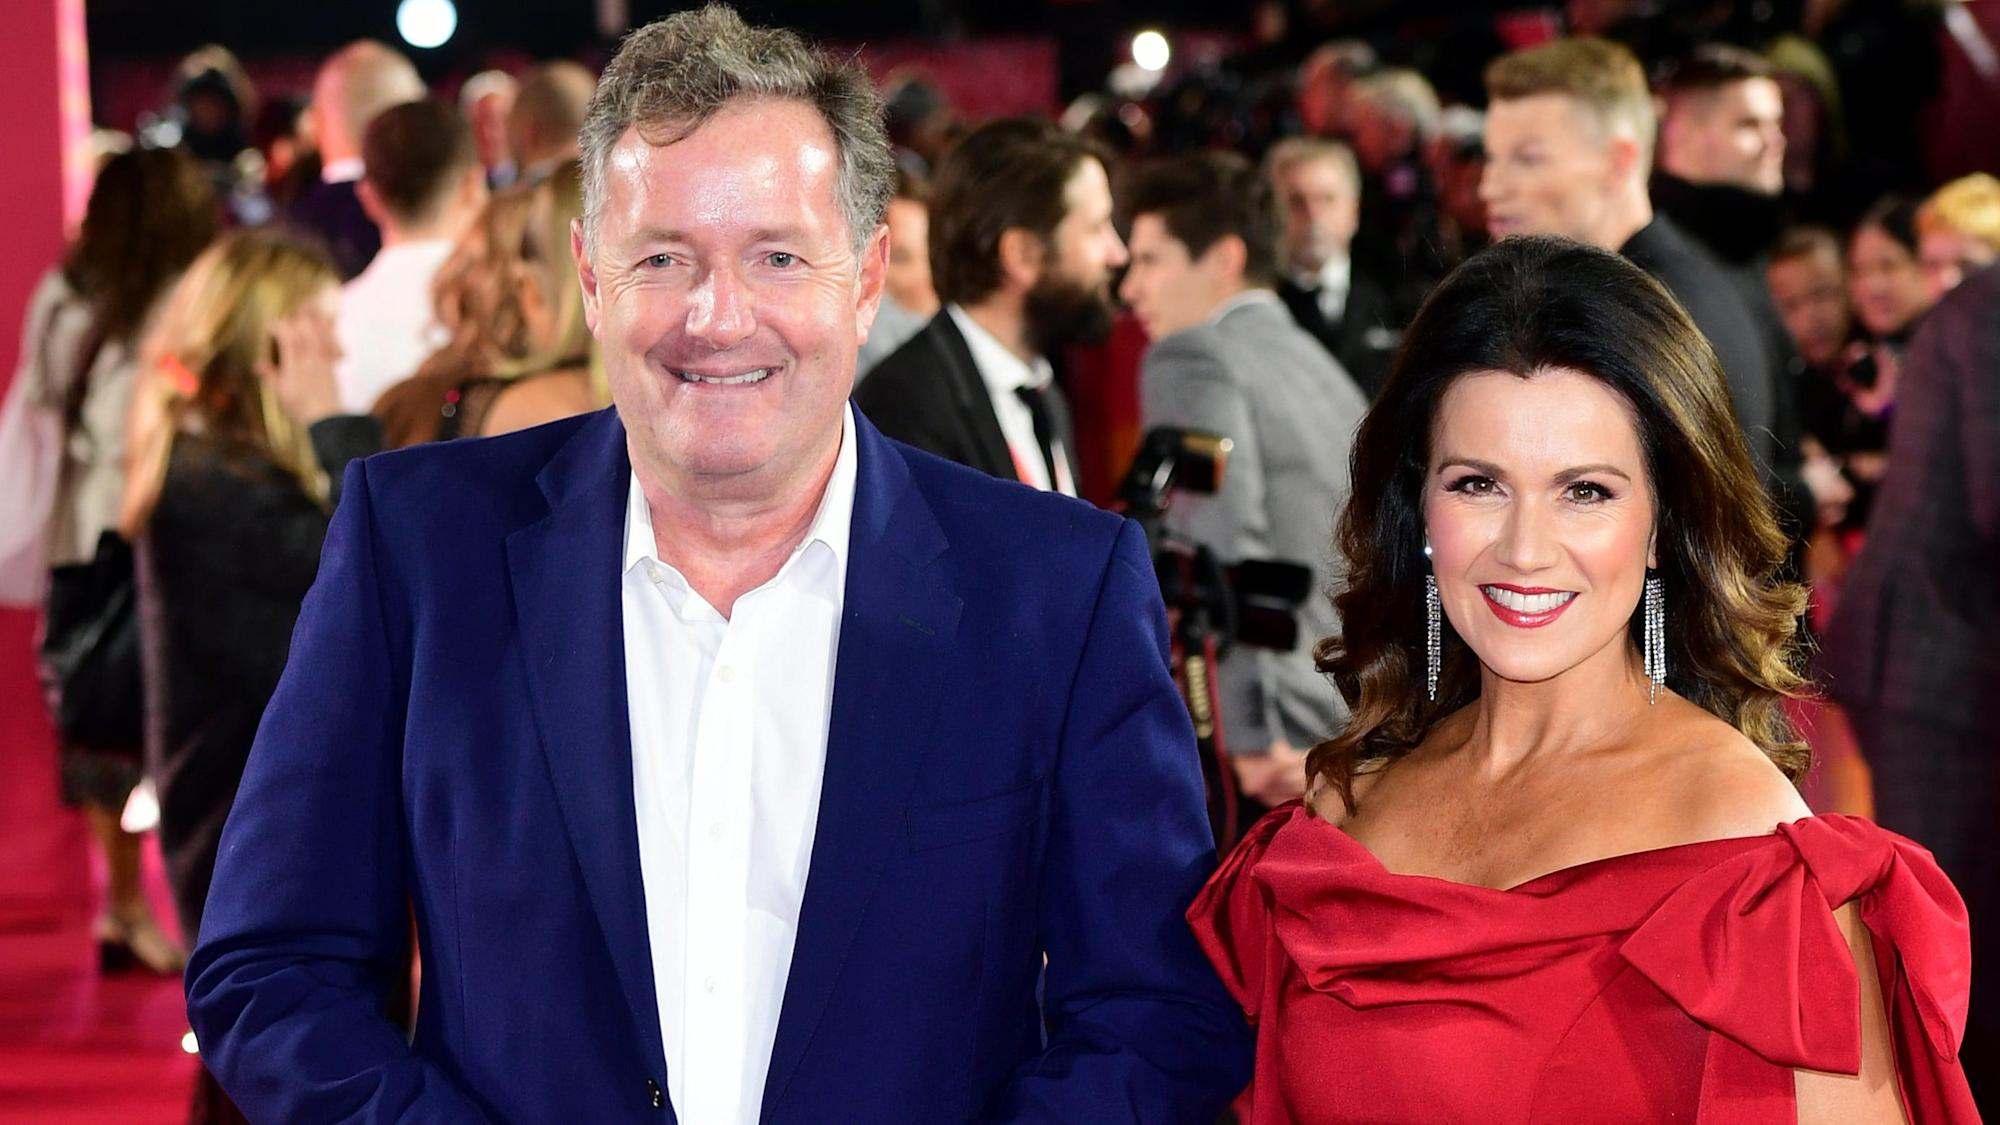 Shouty or Pouty? Piers Morgan and Susanna Reid given Mr Men alter egos